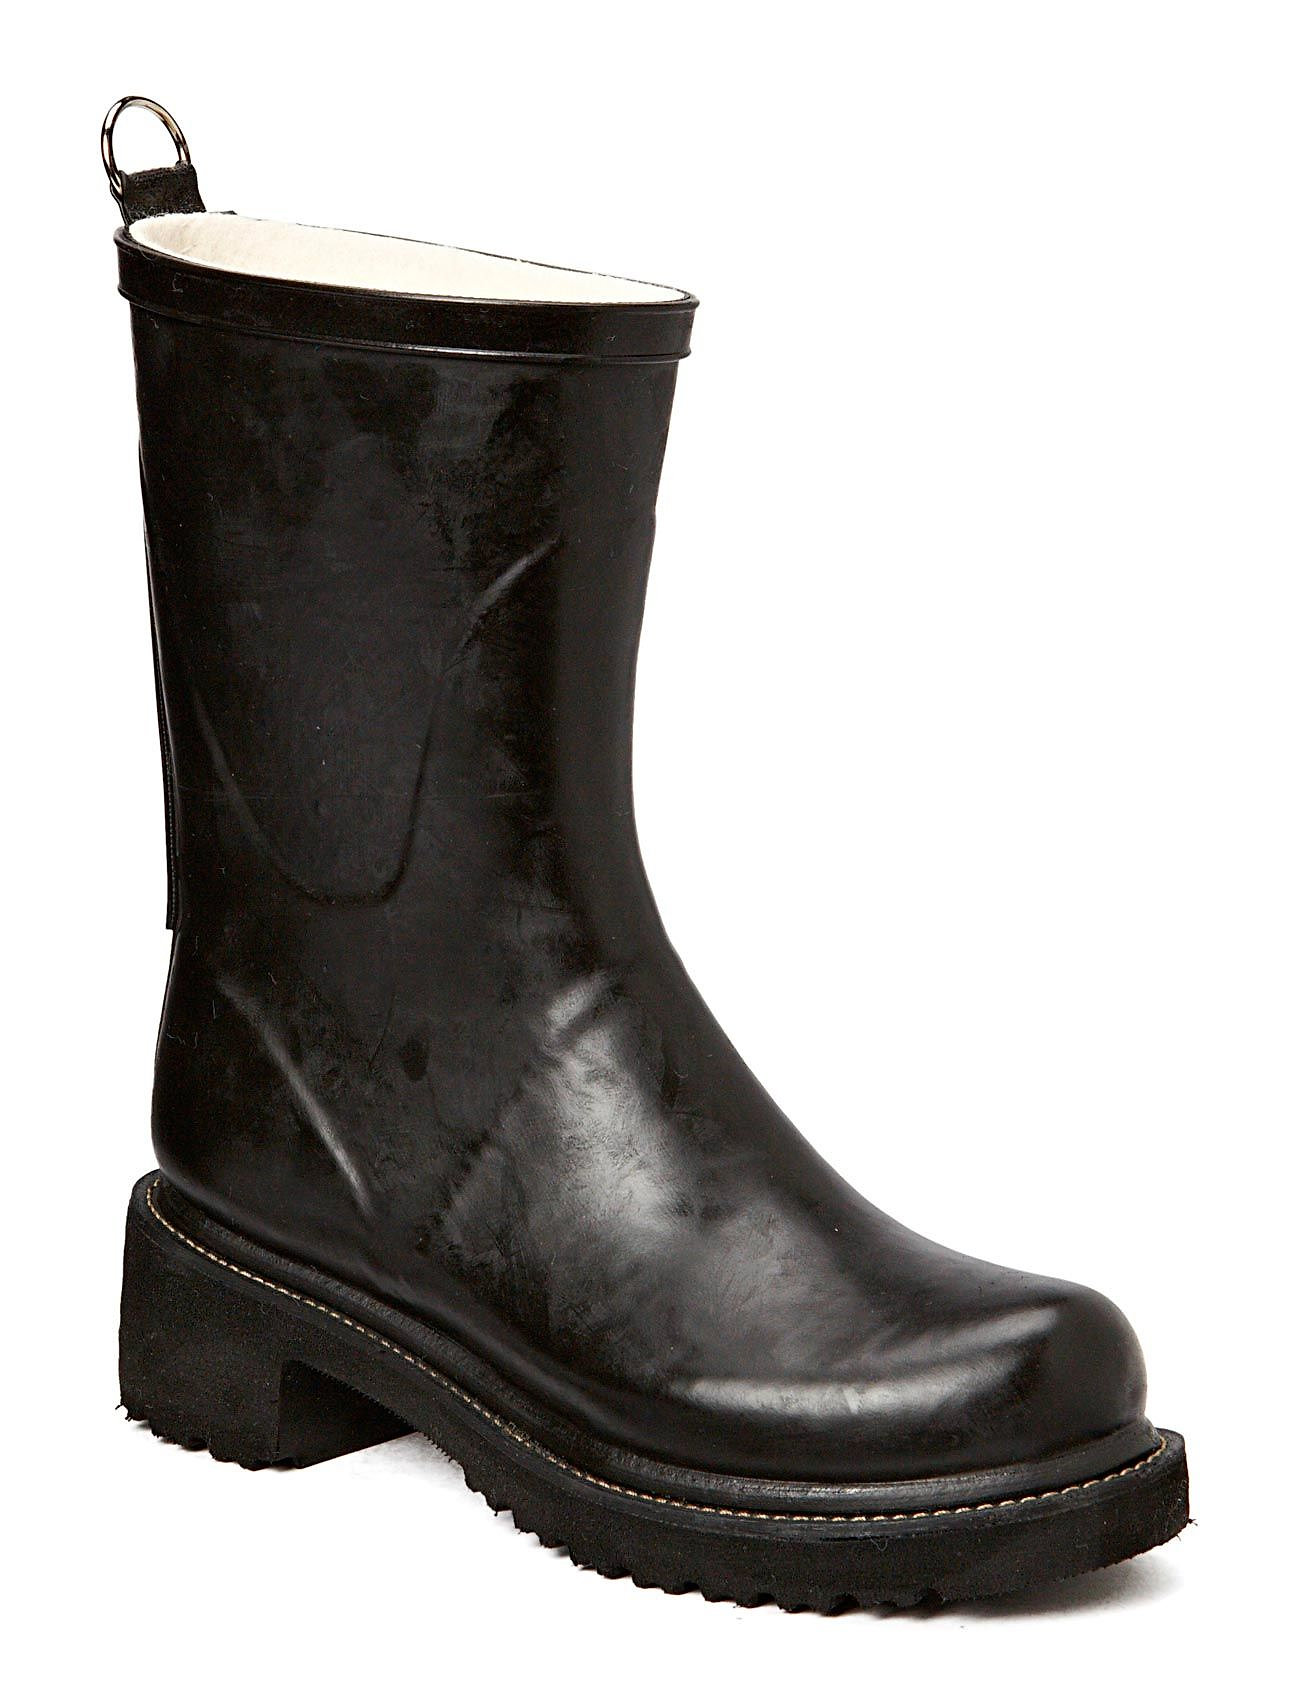 Ilse Jacobsen 3/4 RUBBER BOOT - 01 Black